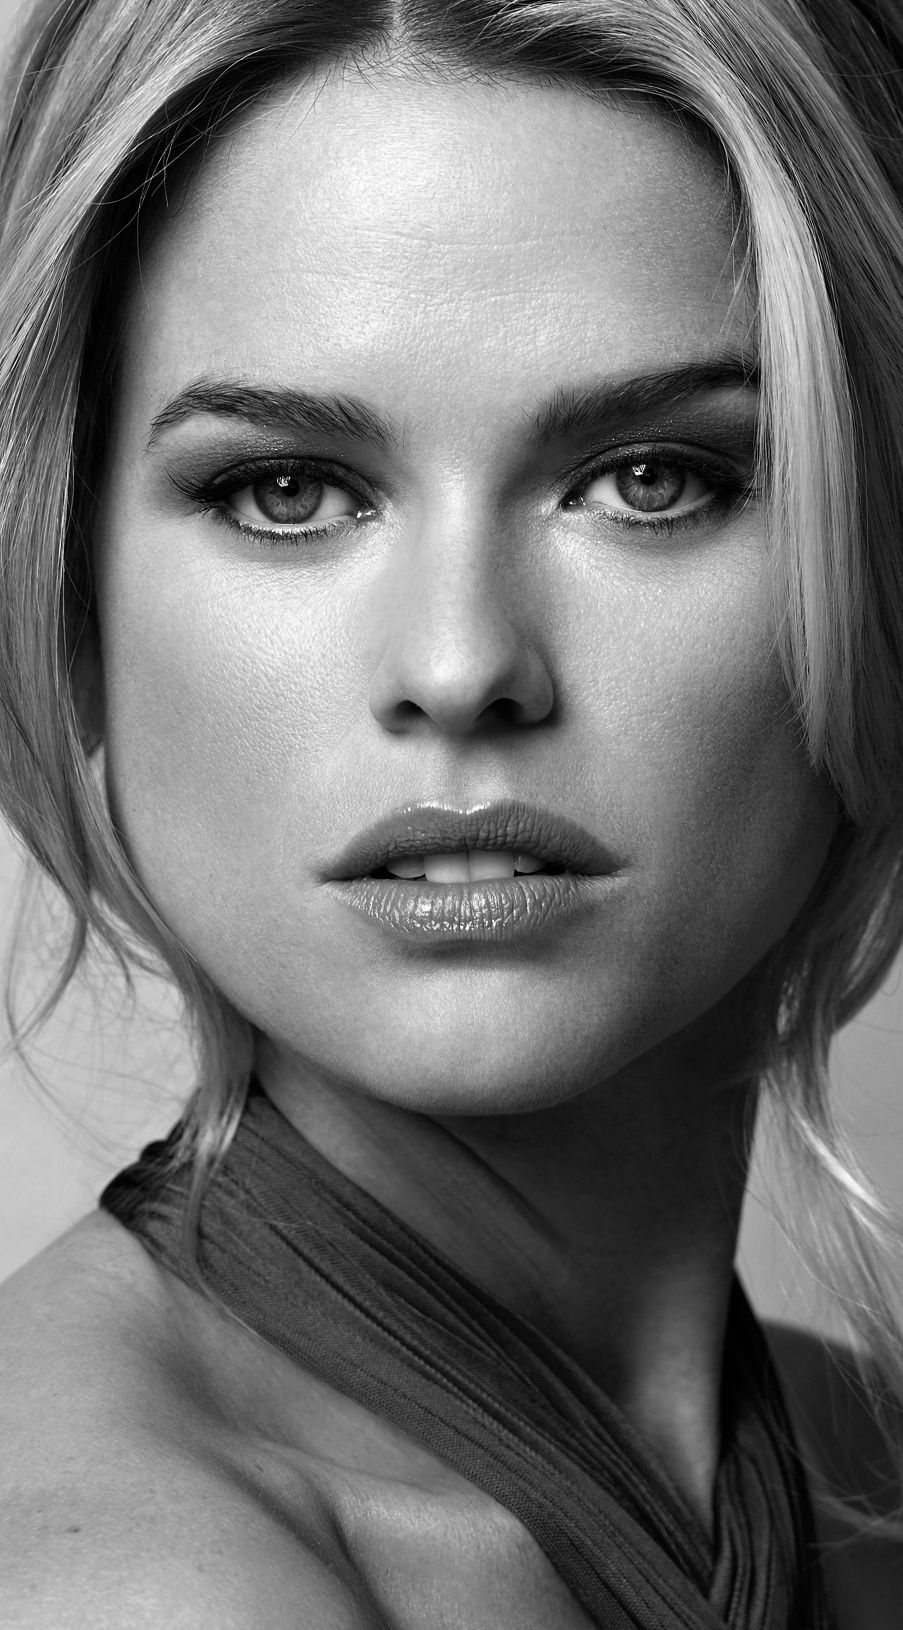 Alice eve black and white portraits black white photos black and white photography